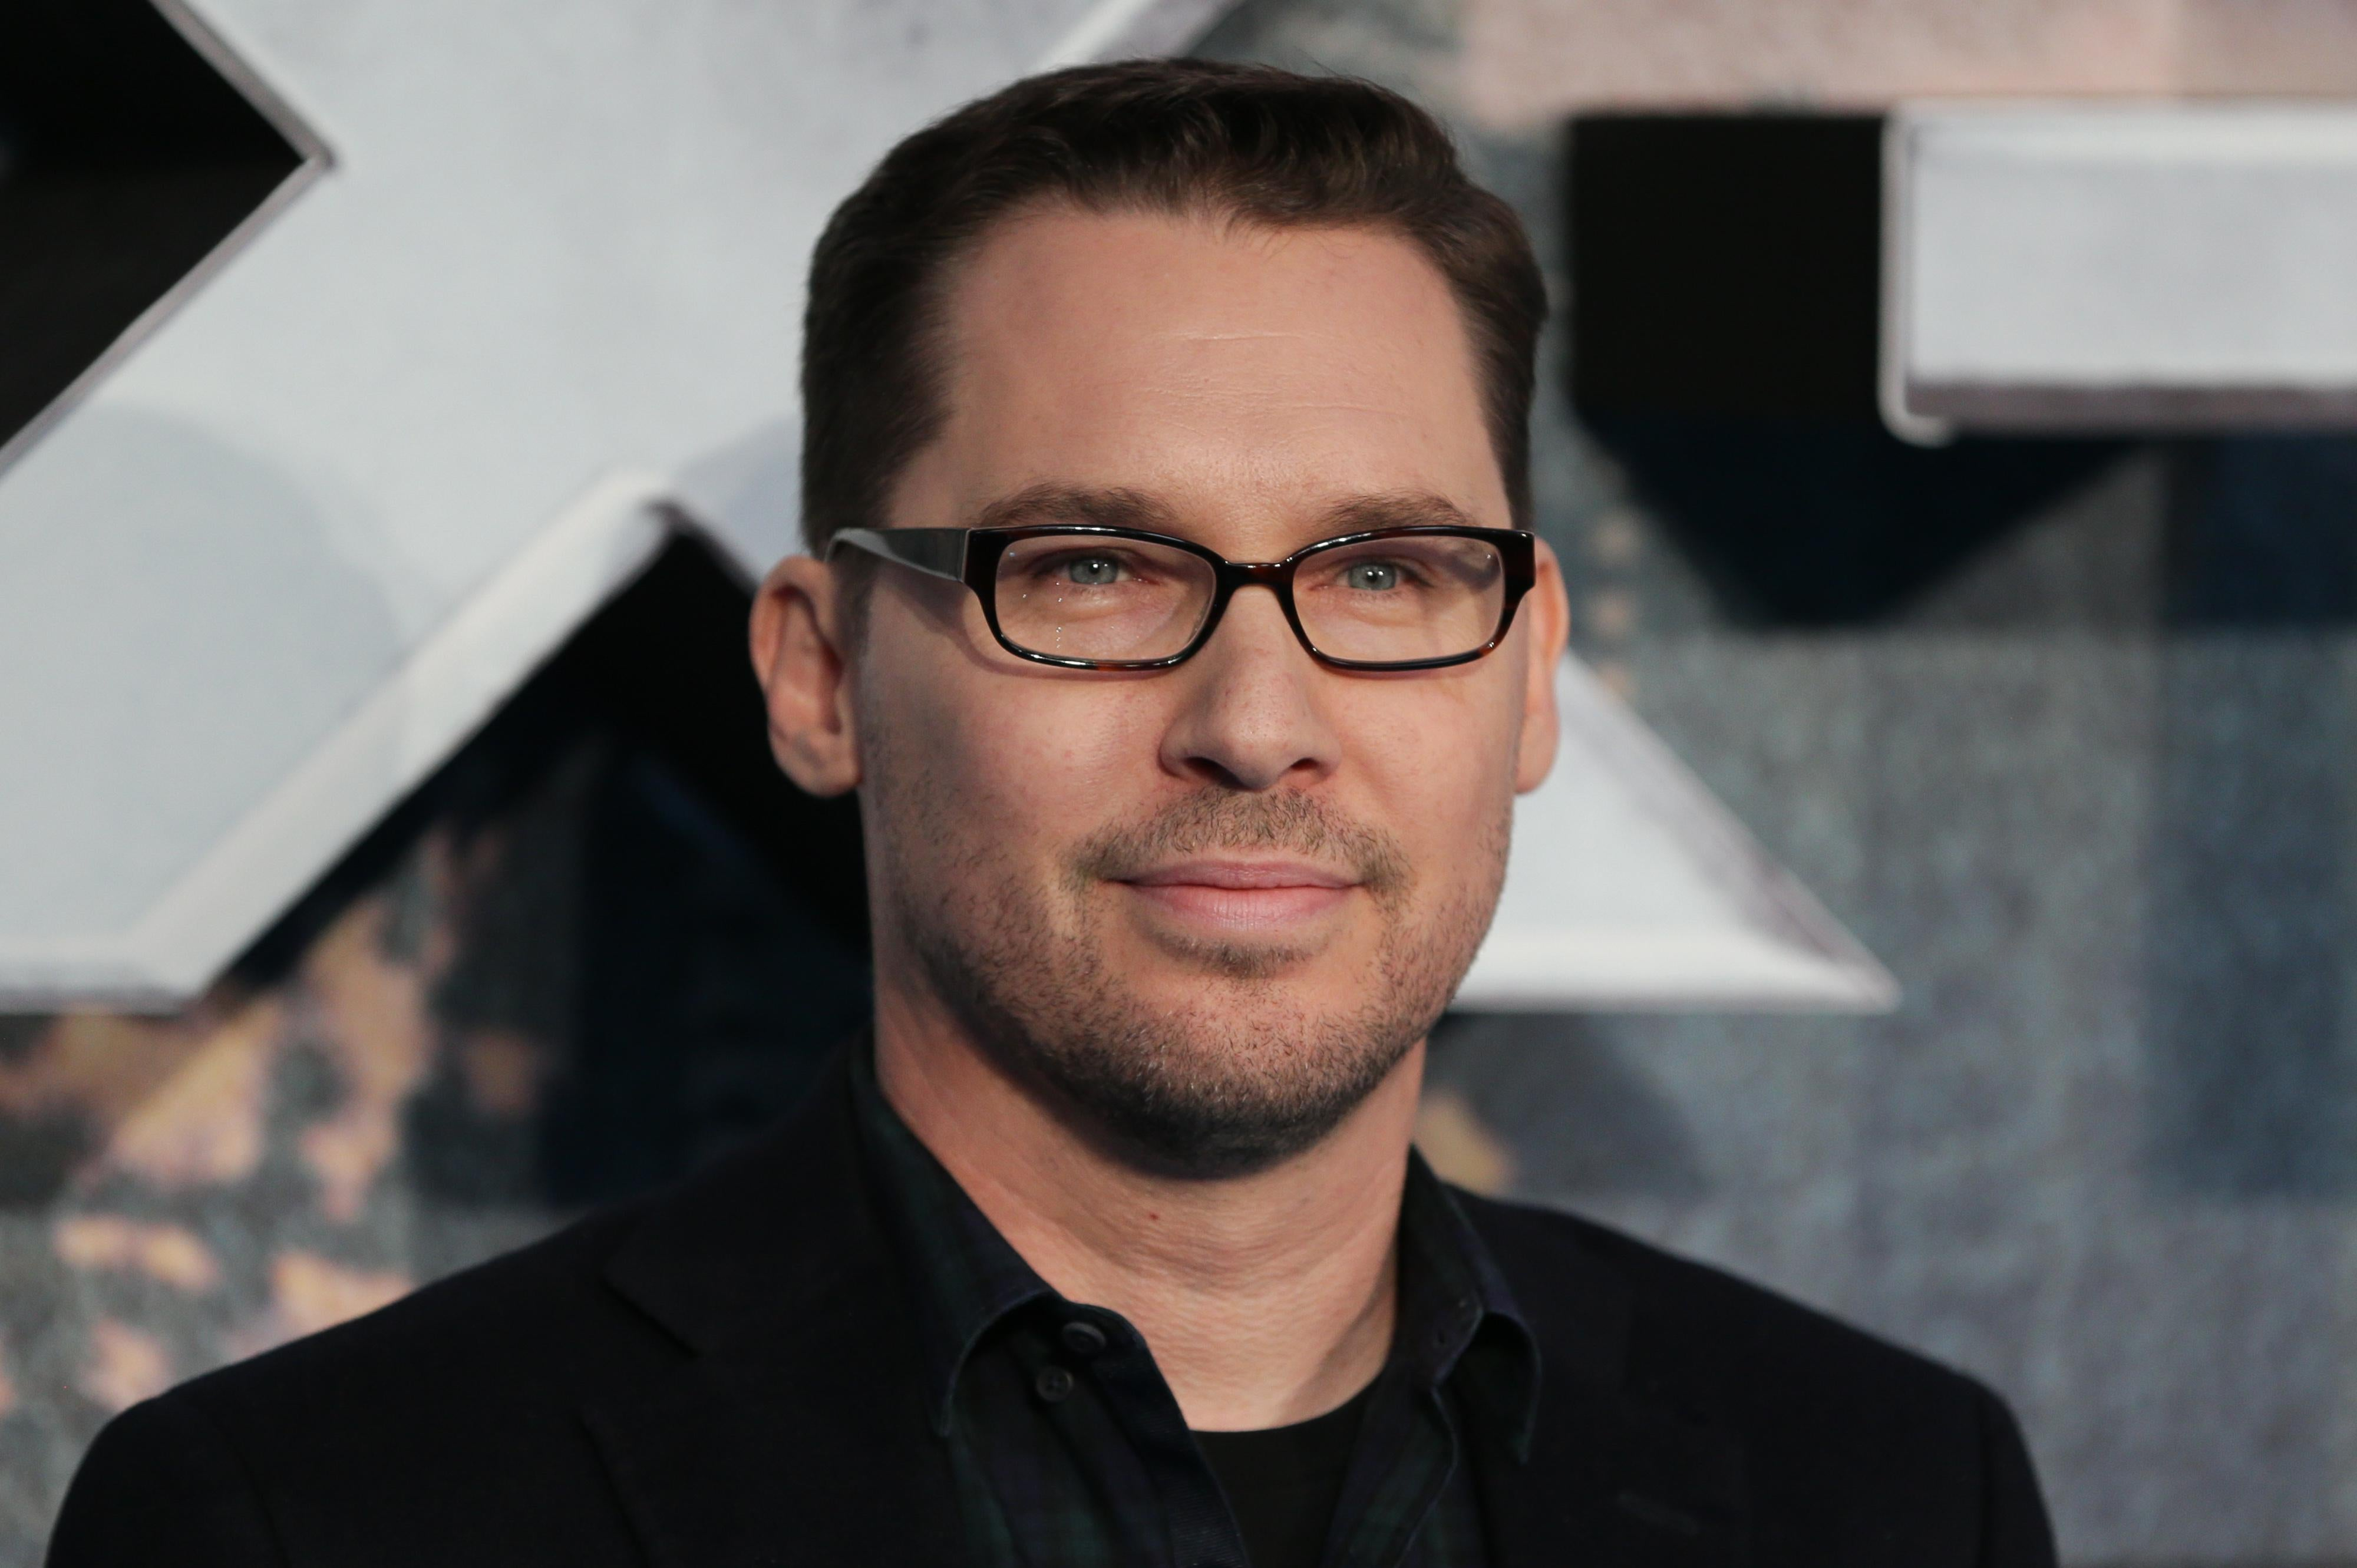 Bryan Singer, wearing a black suit and black glasses, stands in front of a large silver X.